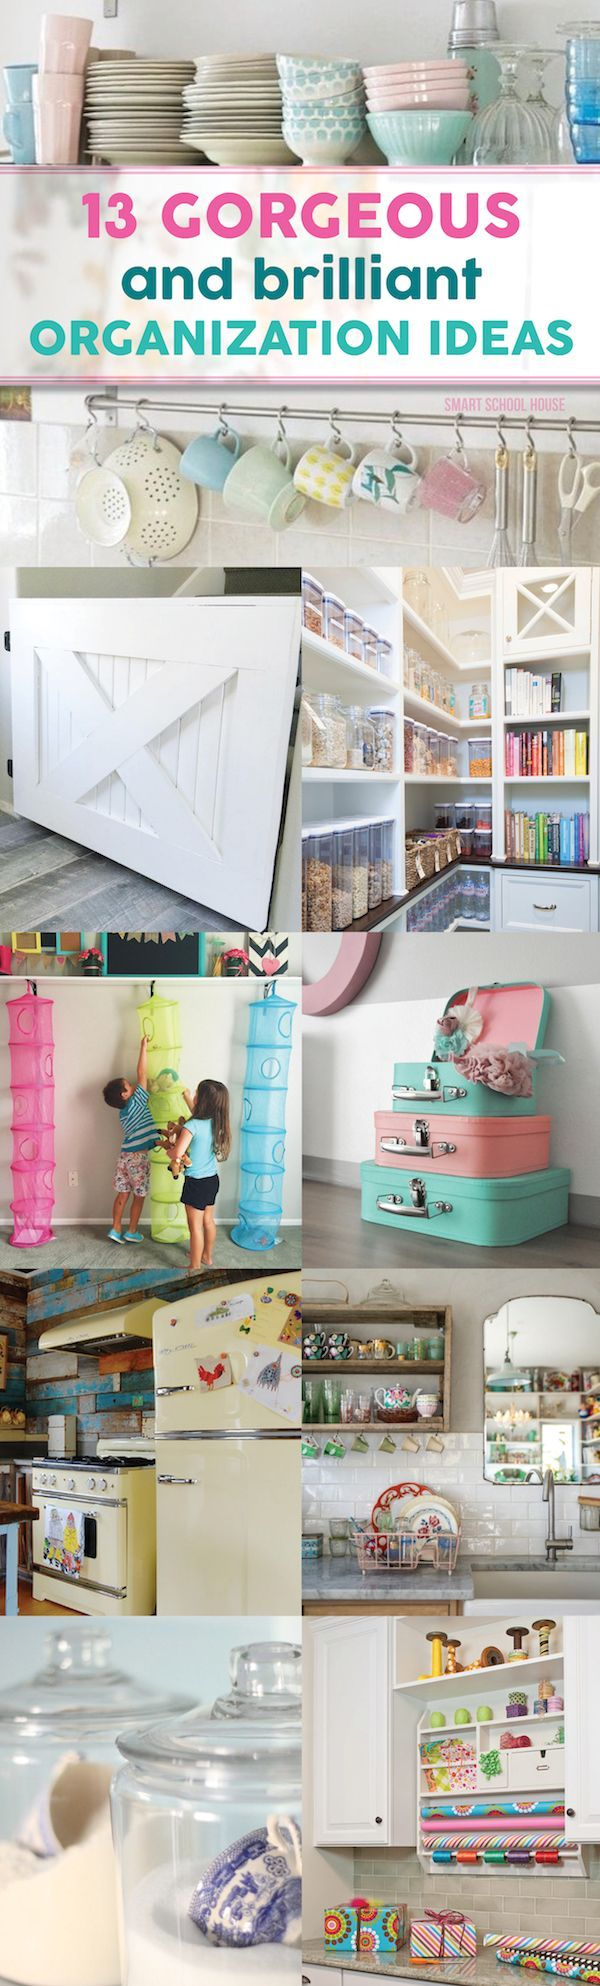 best get organized images on pinterest cleaning organization